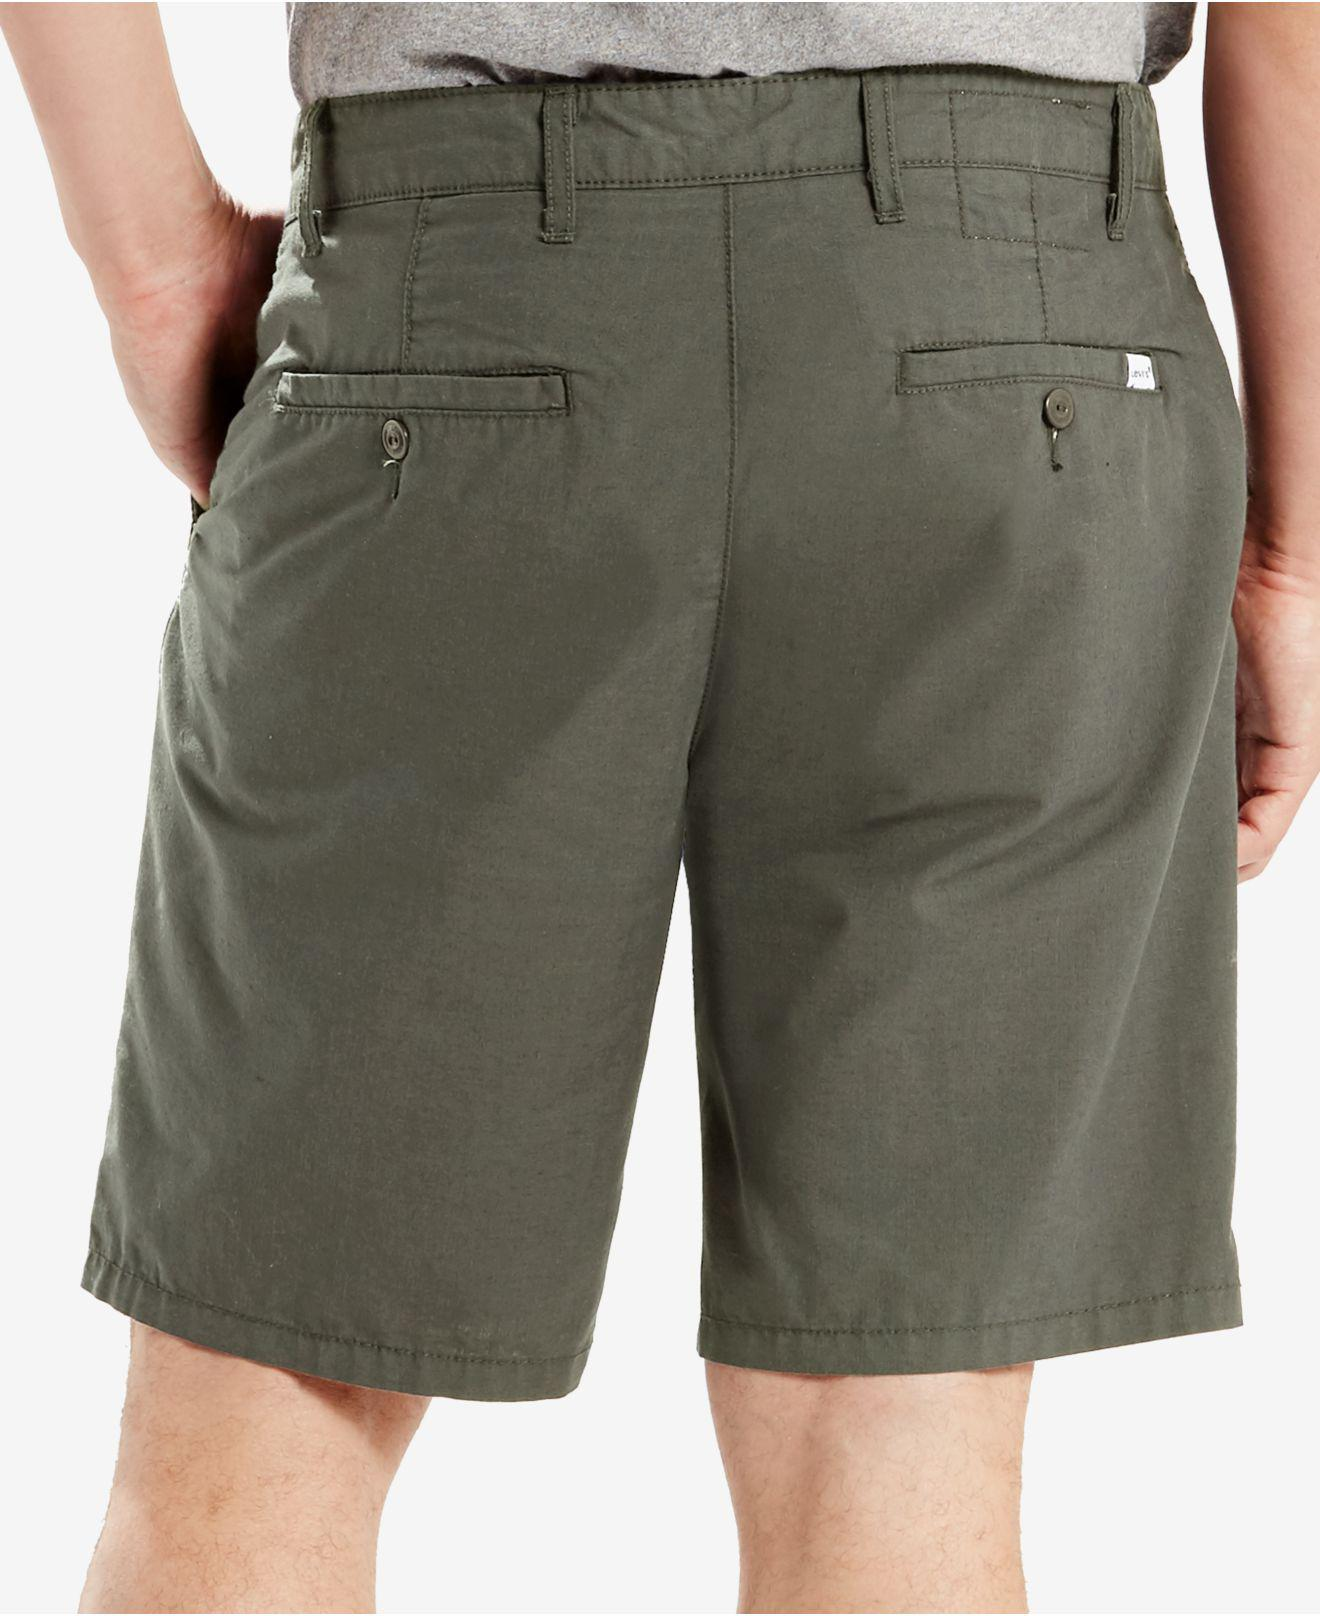 948454040e Levi's Straight-fit Chino Shorts, True Chino Wash in Green for Men ...